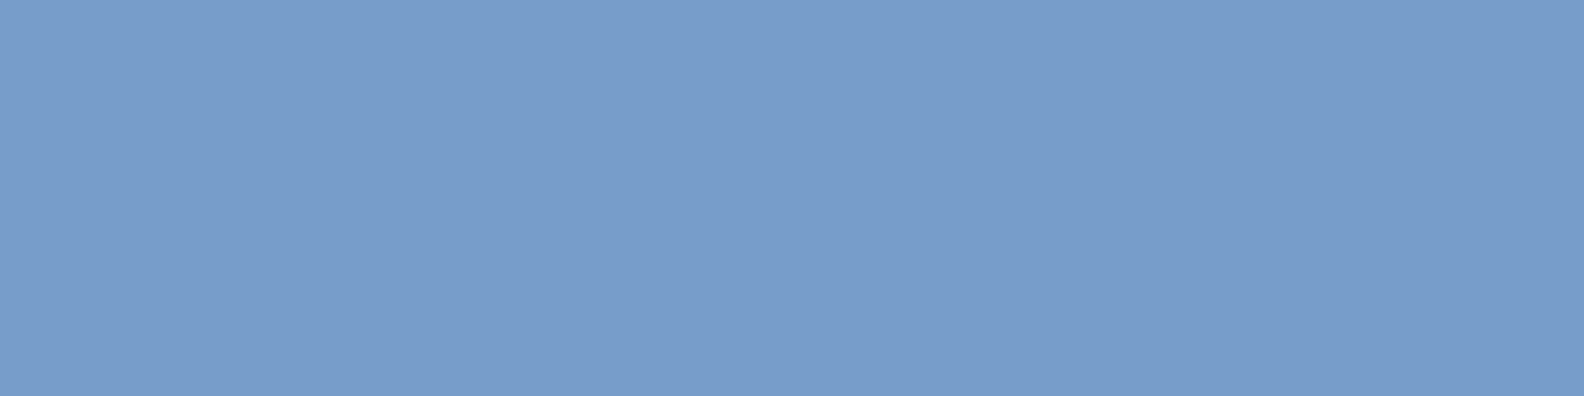 1584x396 Dark Pastel Blue Solid Color Background